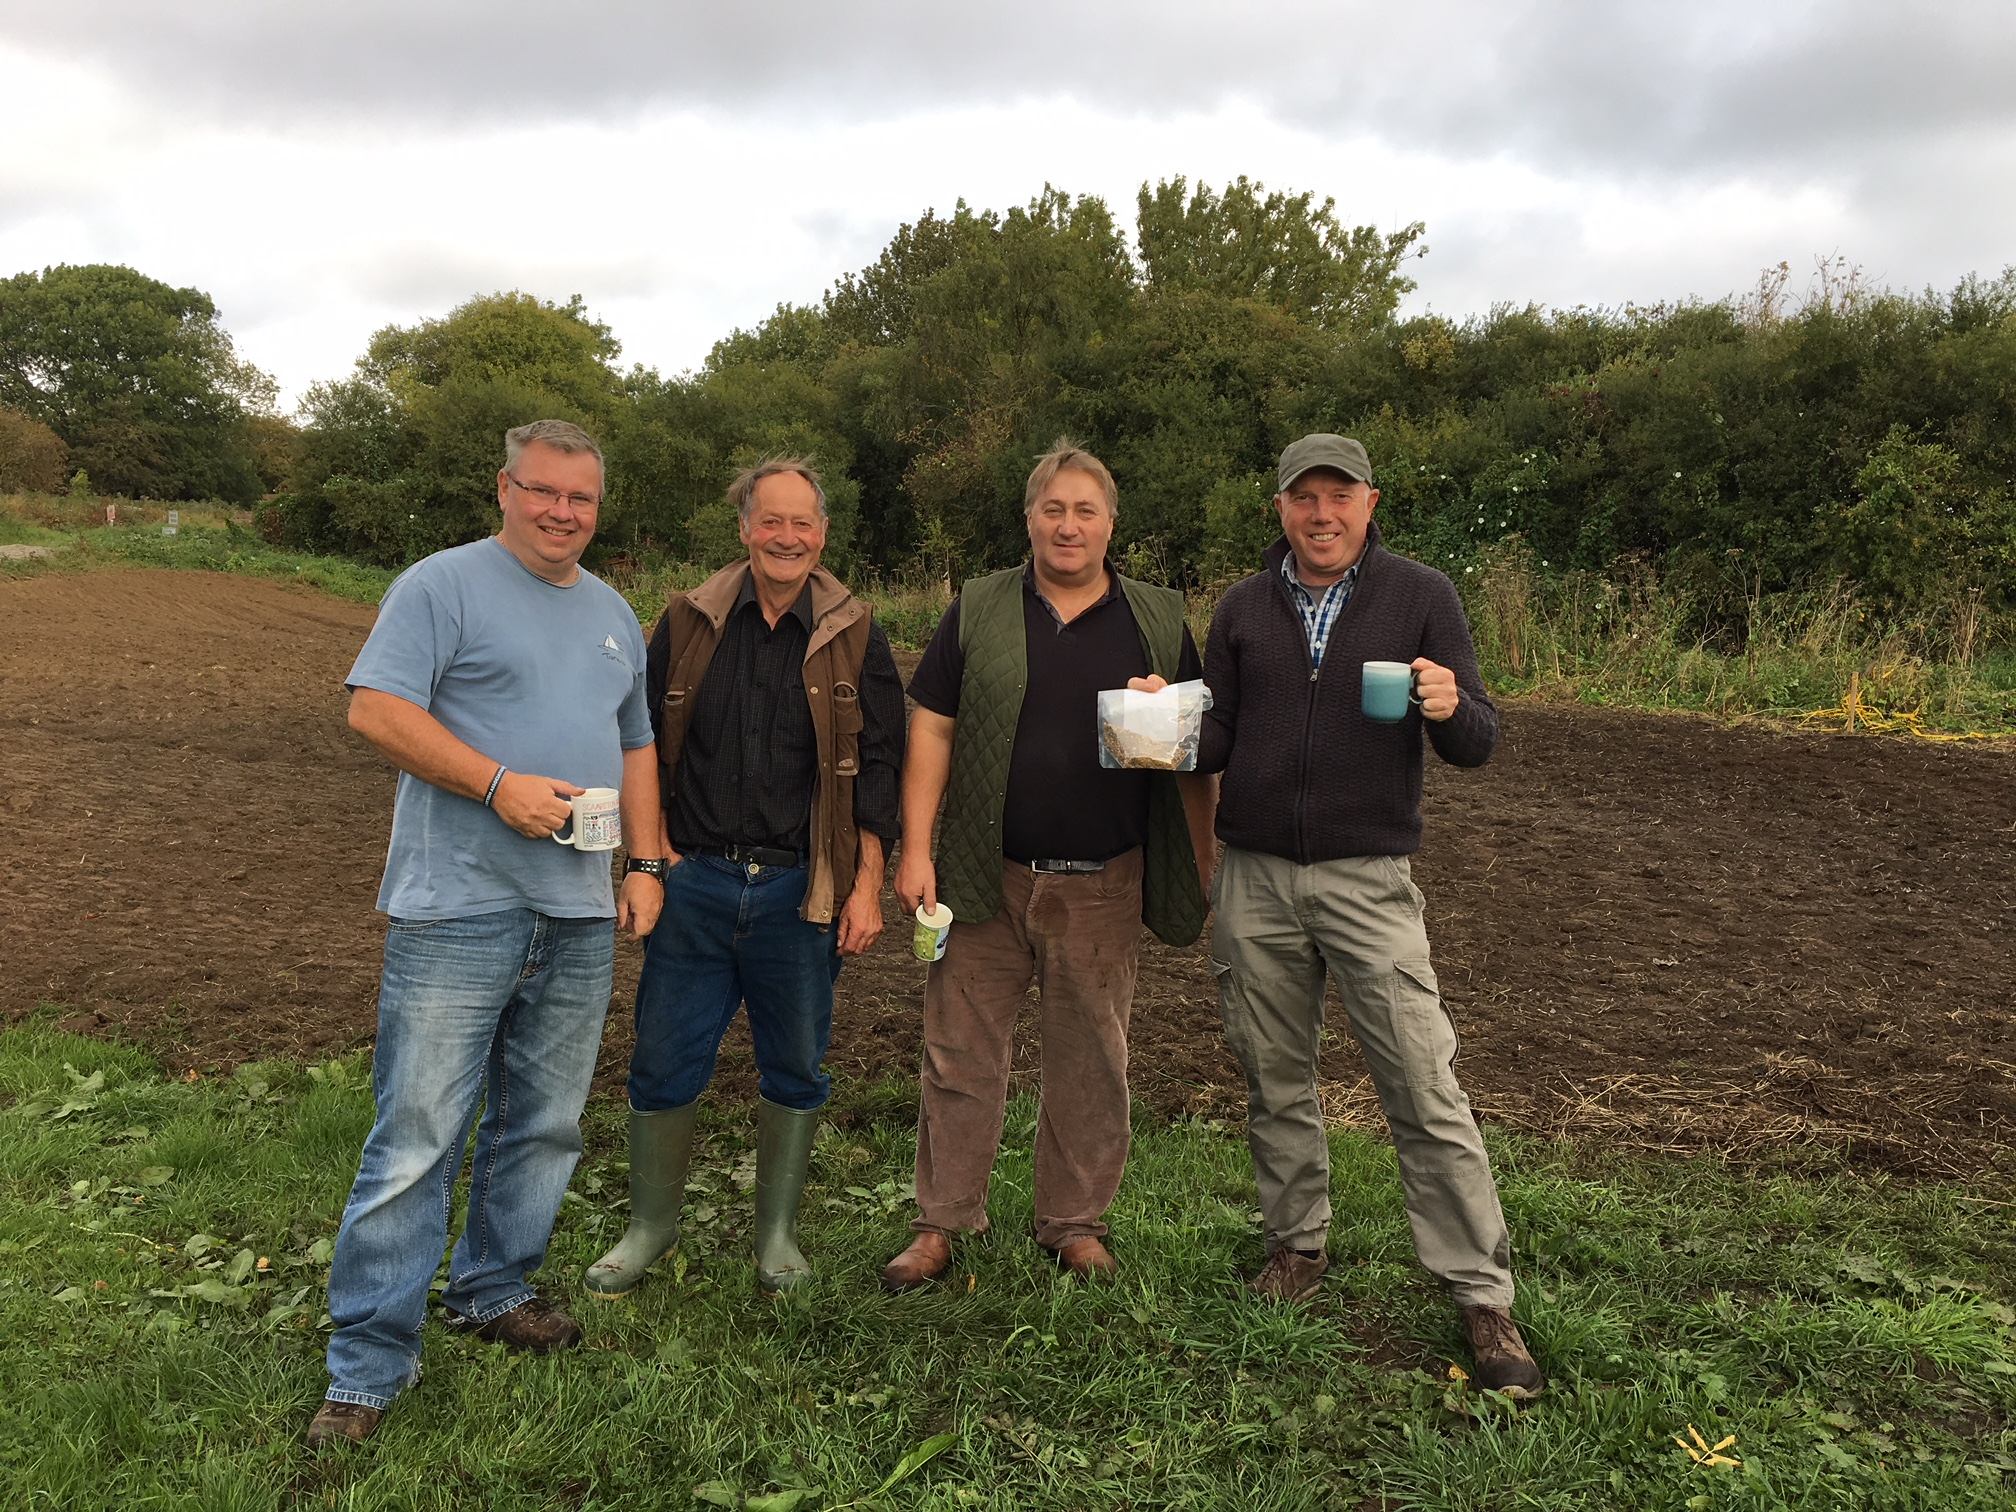 Sawdon Community Group, with Richard on the right - celebrating the first community Turtle Dove plot with a mug of tea!. Copyright NYMNPA.